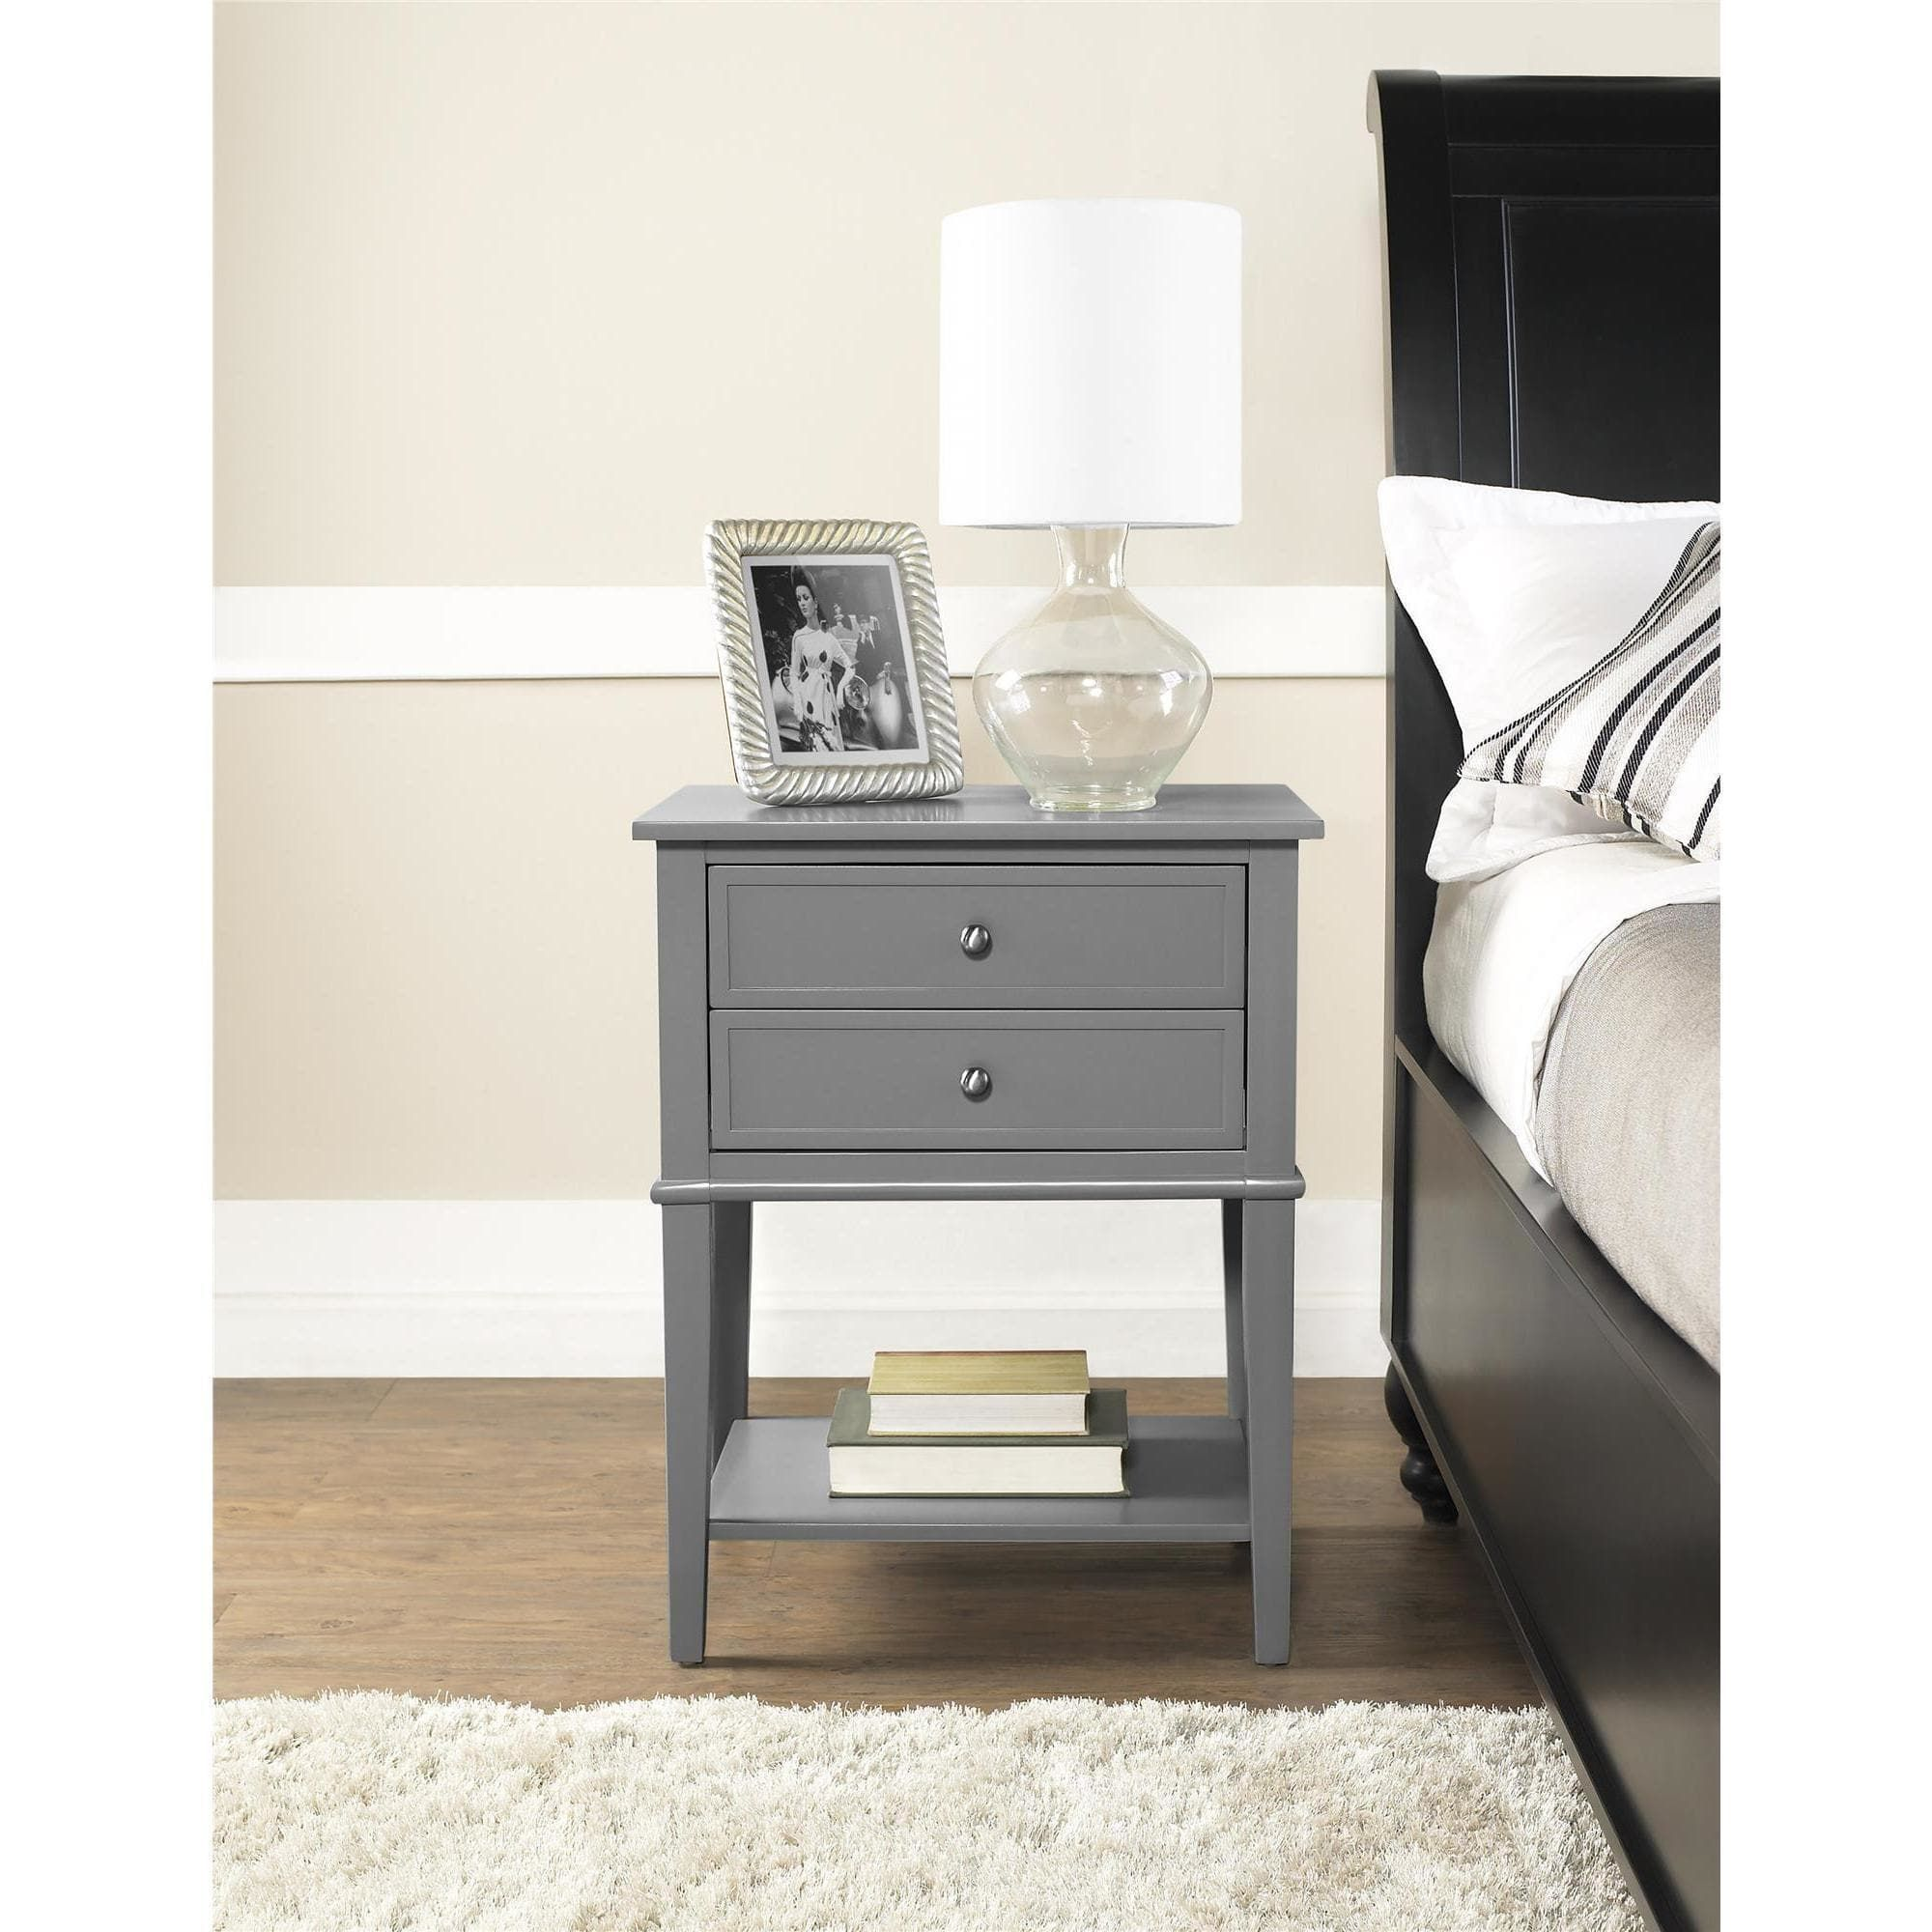 clay alder home isleton white drawer accent table grey bedroom end tables leons stoves pallet nightstand ideas plastic patio chairs liberty furniture reviews ratings gray nesting